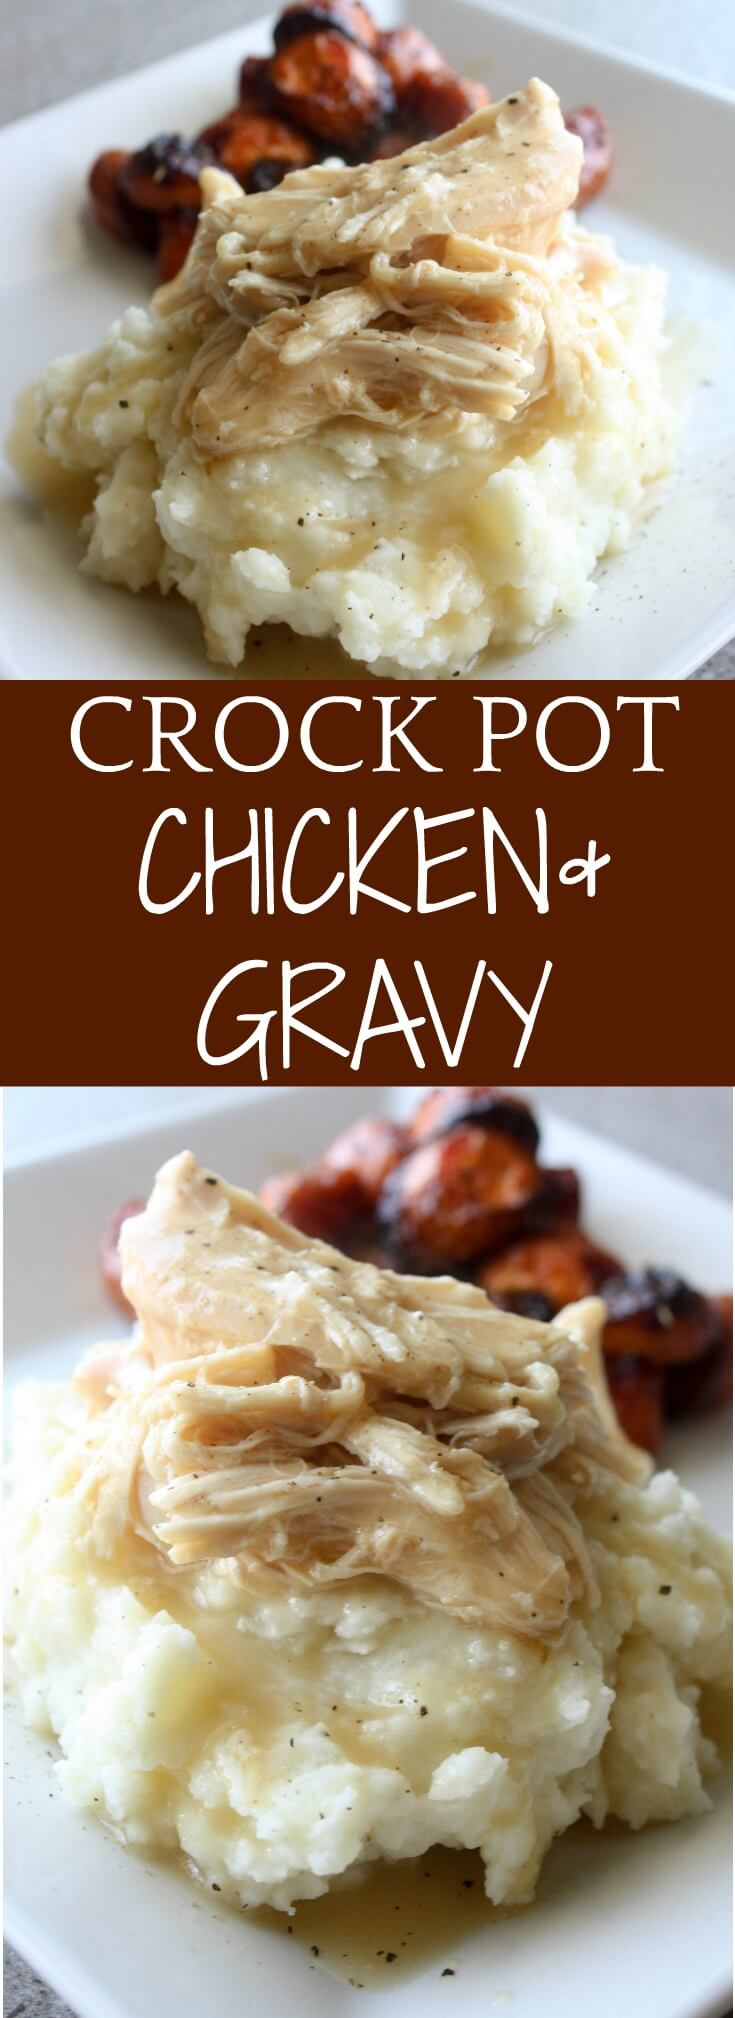 Crock Pot Chicken and Gravy Recipe